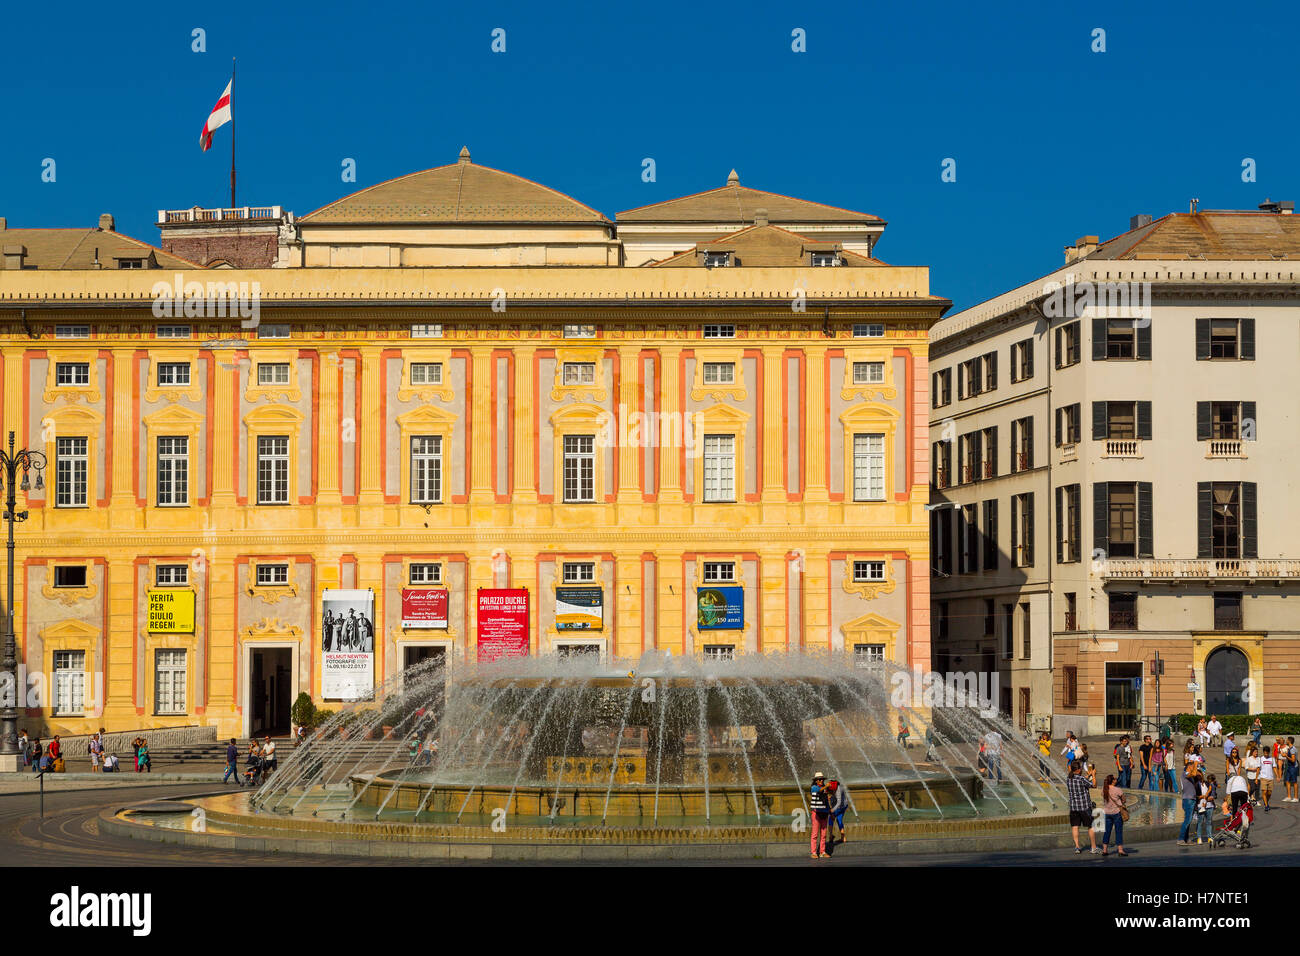 Fontana Piazza de Ferrari. Historic center, Old Twon. Genoa. Mediterranean Sea. Liguria, Italy Europe - Stock Image